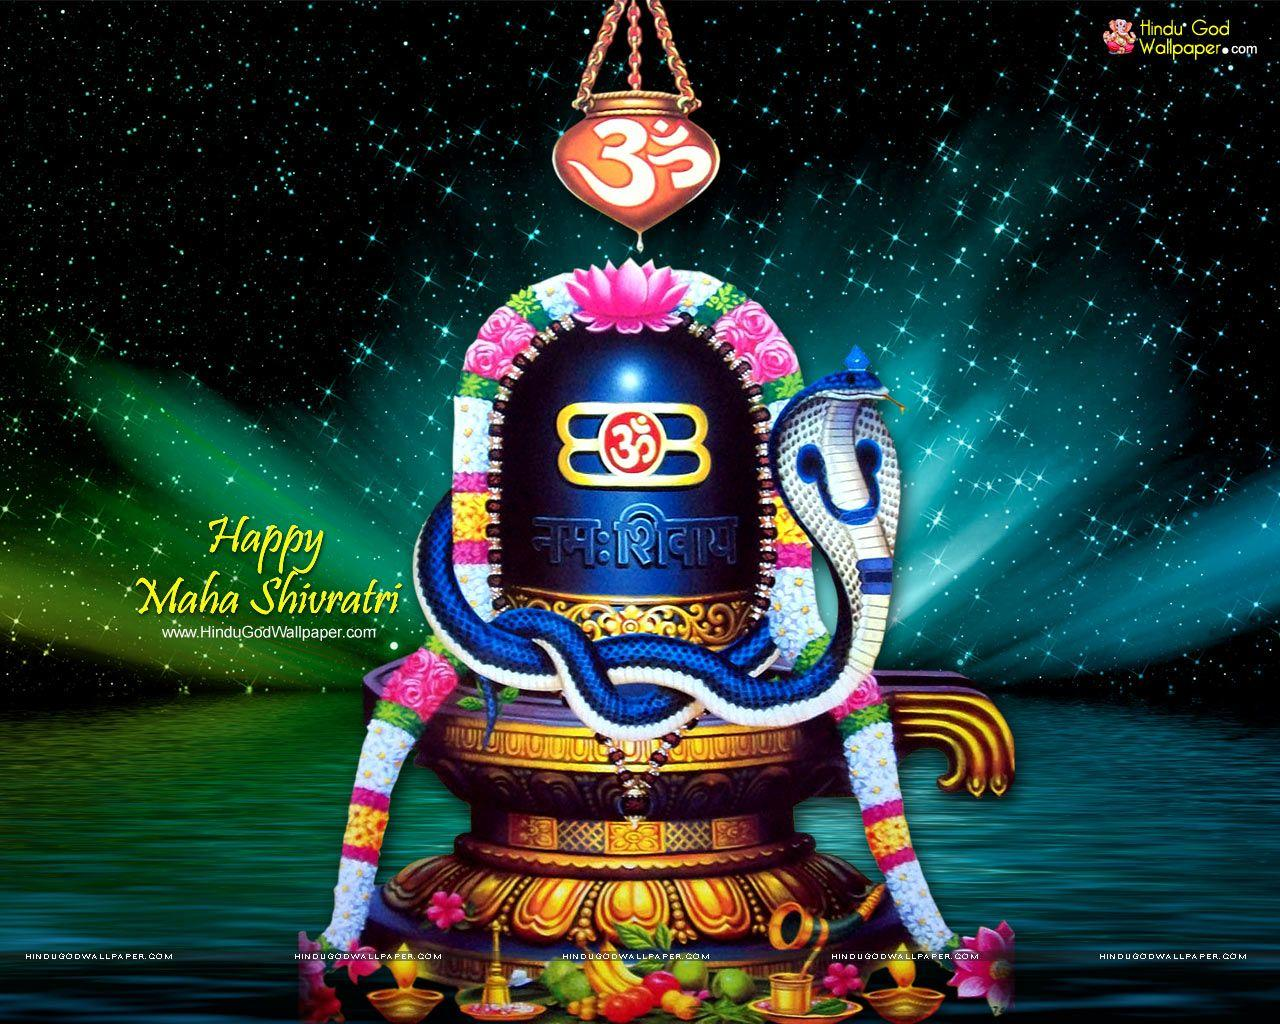 Maha Shivratri Wallpapers SMS | Greetings Free Download